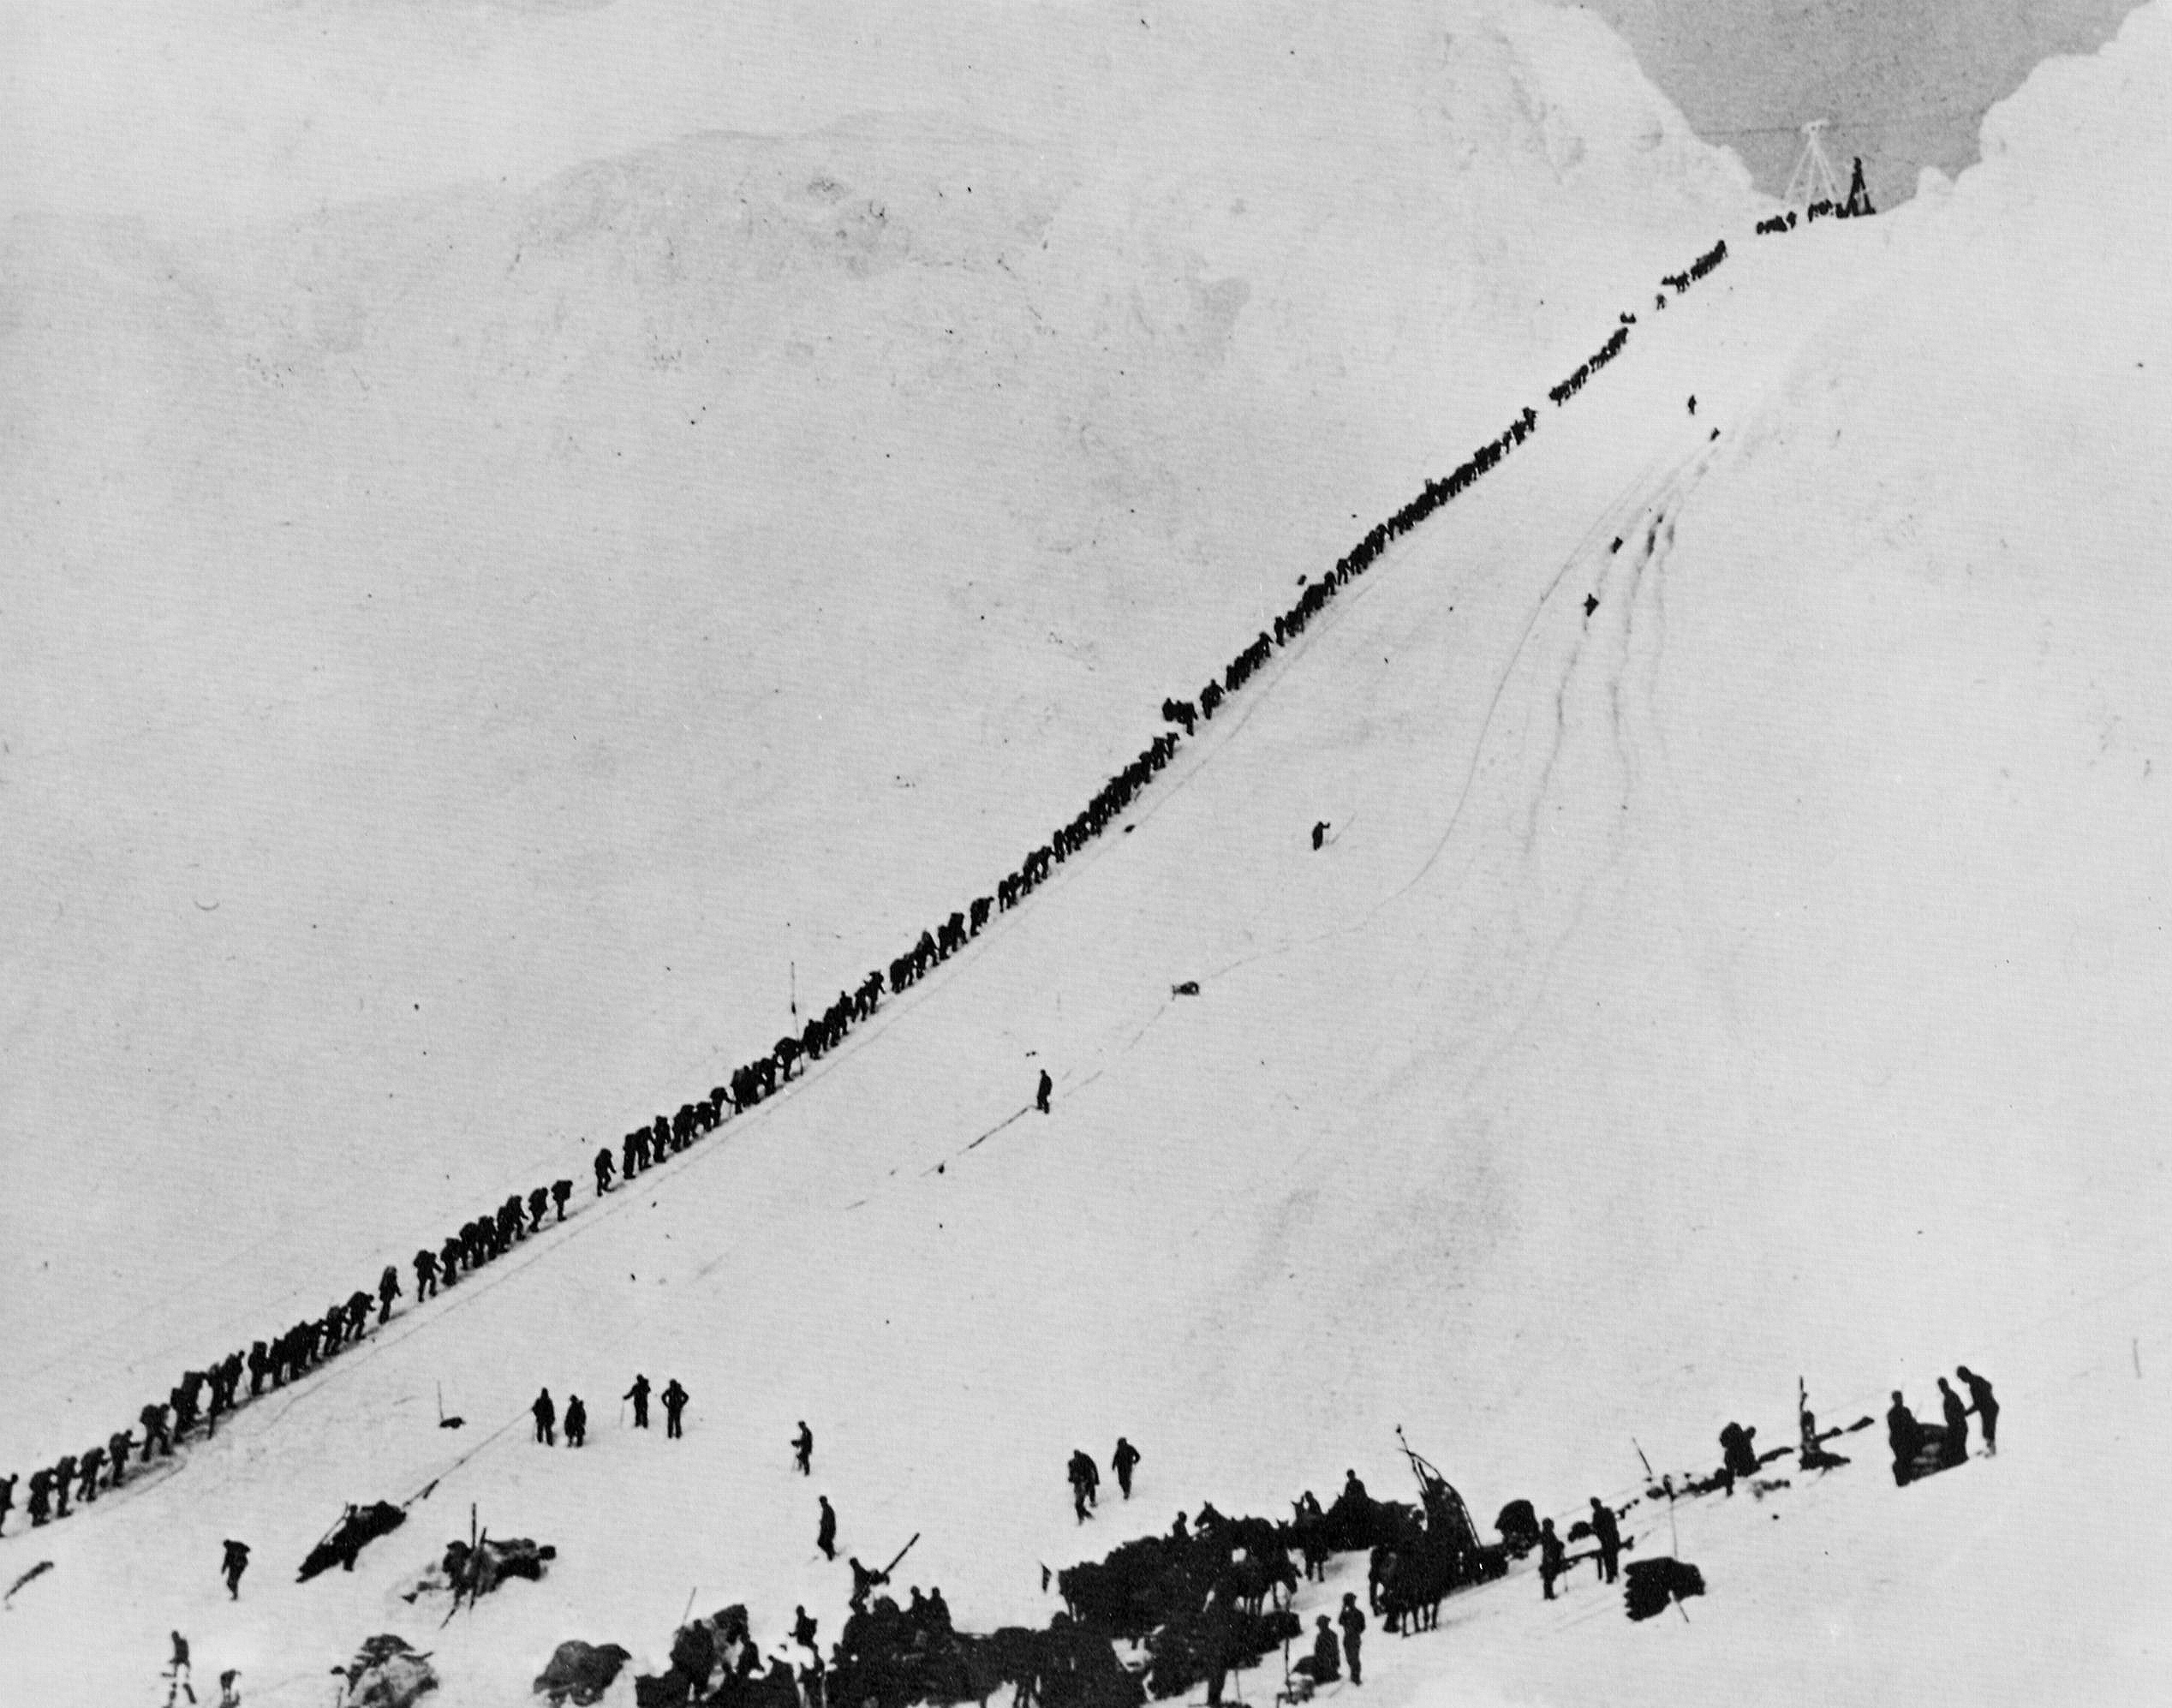 Miners and prospectors climb the Chilkoot Trail during the Klondike Gold Rush, September 1898.